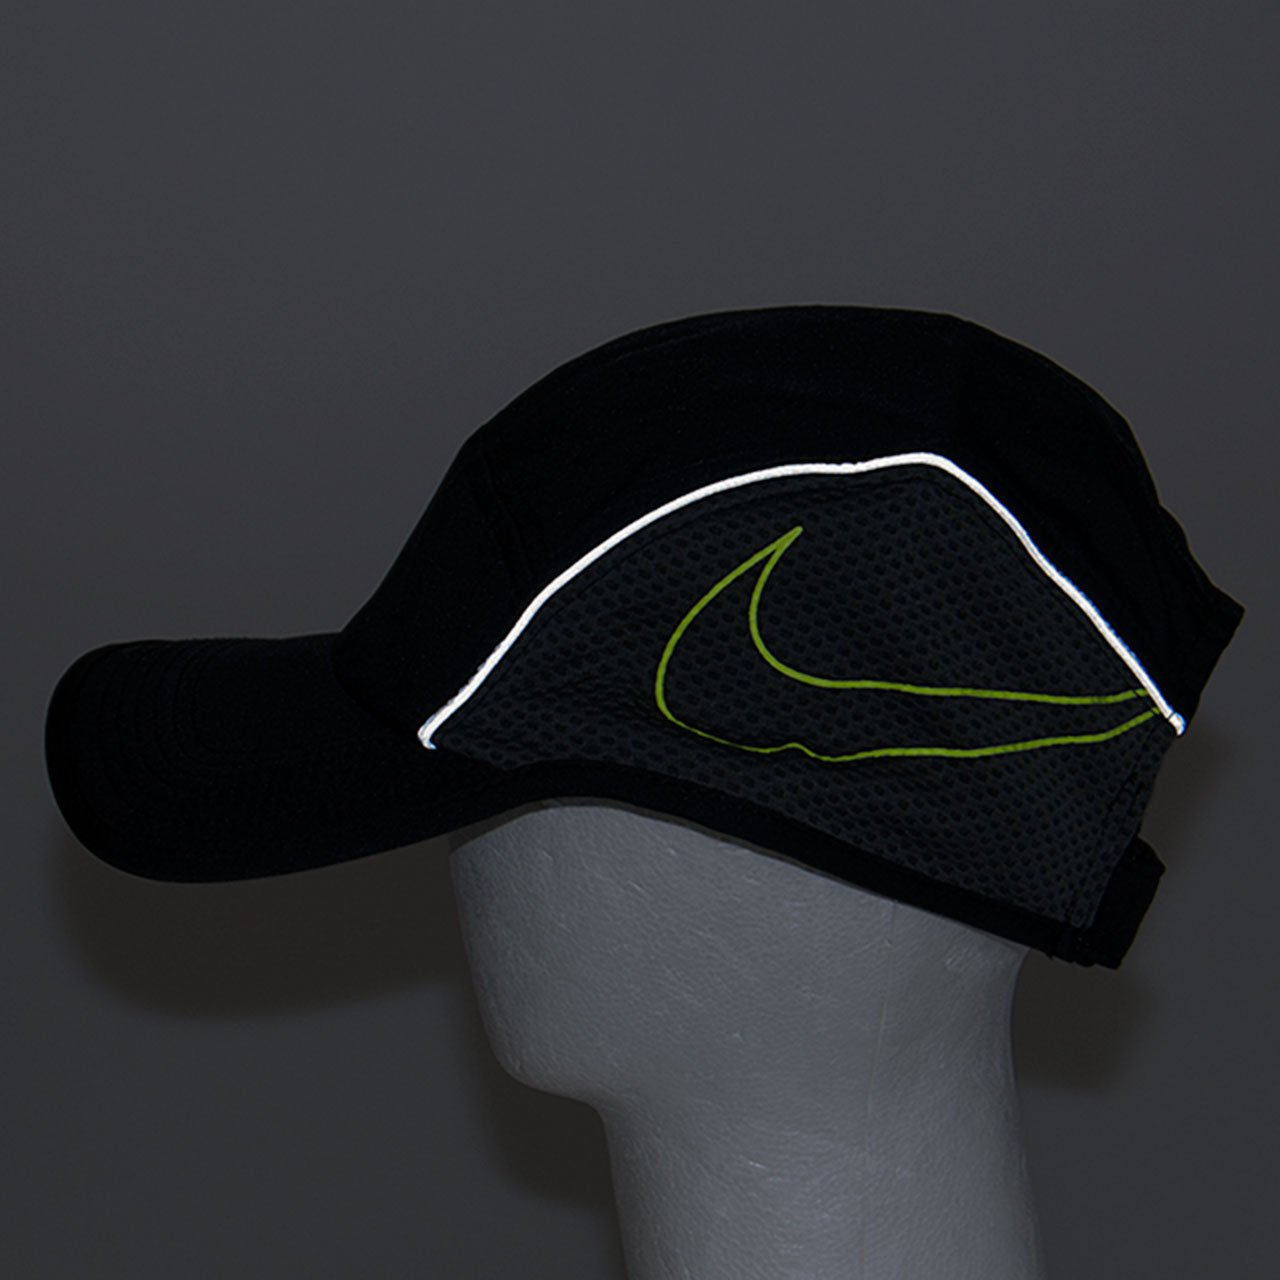 Nike AeroBill AW84 Running Cap Black Anthracite Volt Adult One Size   Amazon.ca  Jewelry 76a98377ed65